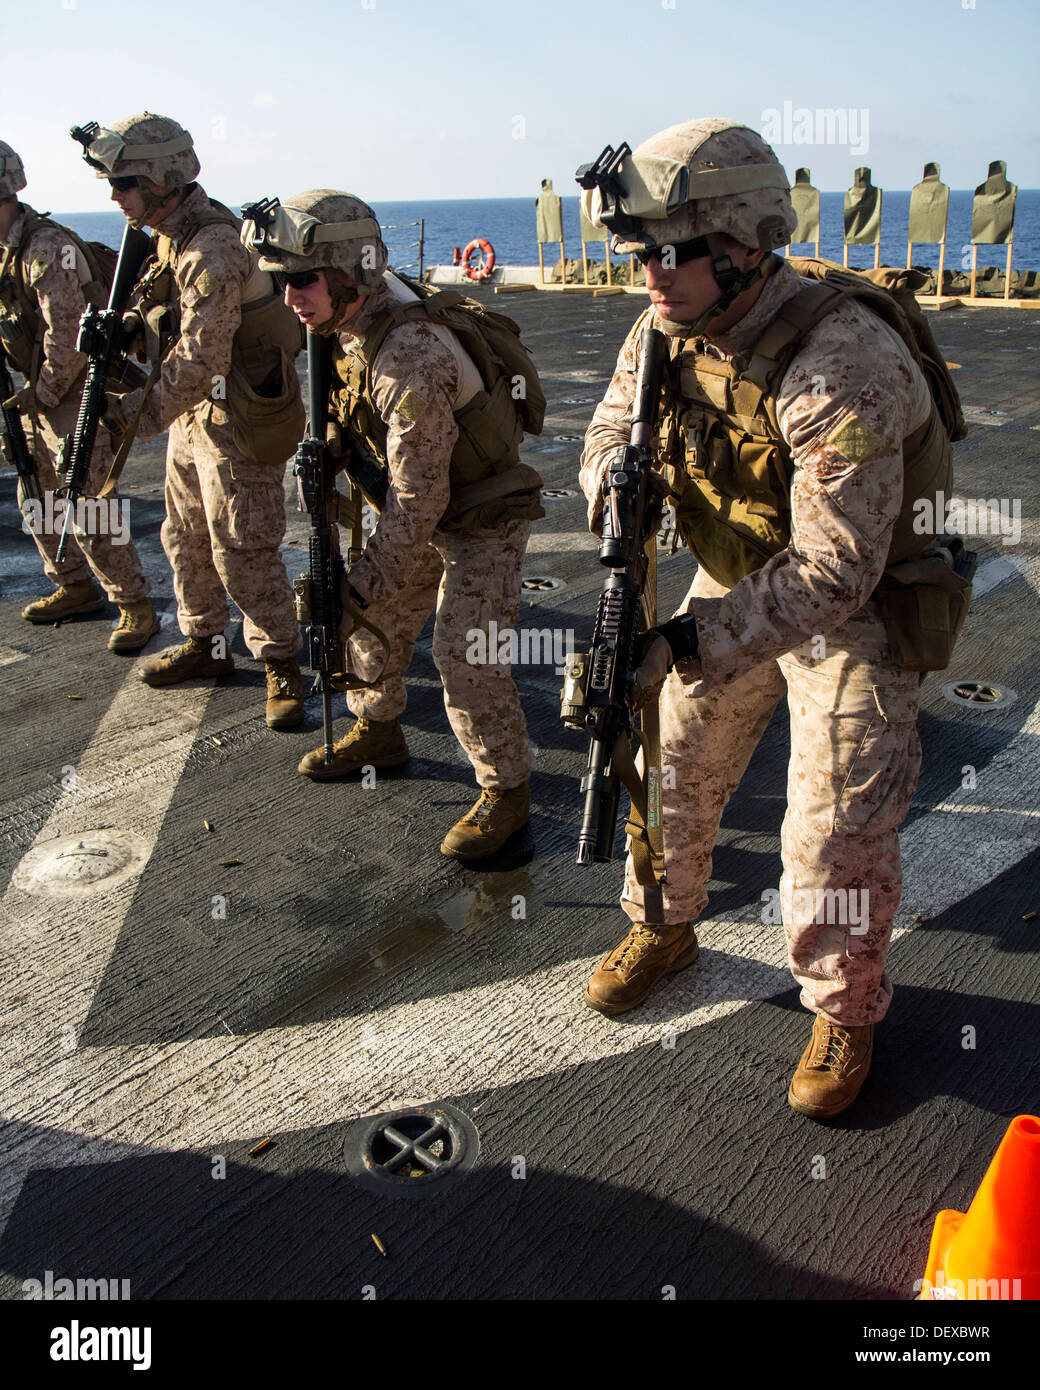 U.S. Marines assigned to Company L, Battalion landing Team 3/2, 26th Marine Expeditionary Unit (MEU), prepare to fire on targets during a live fire exercise on the flight deck of the USS San Antonio (LPD 17), at sea, Sept. 12, 2013. The 26th MEU is a Mari Stock Photo